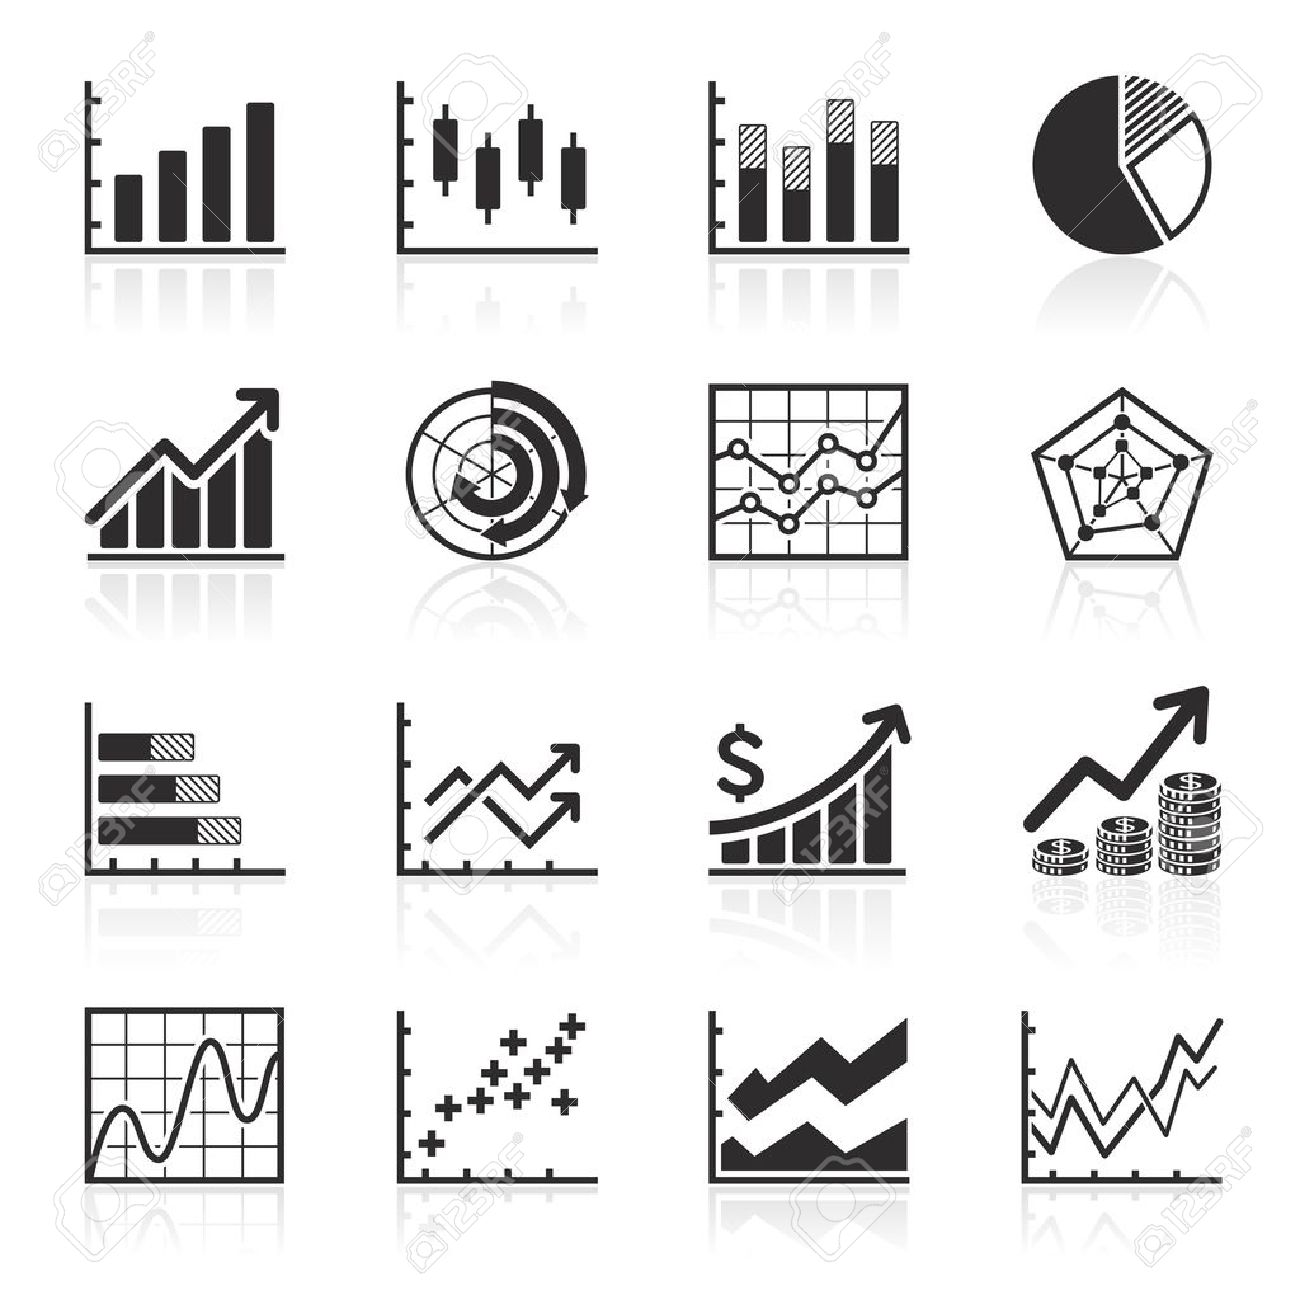 Business Infographic Icons - Vector Graphics Royalty Free Cliparts ...